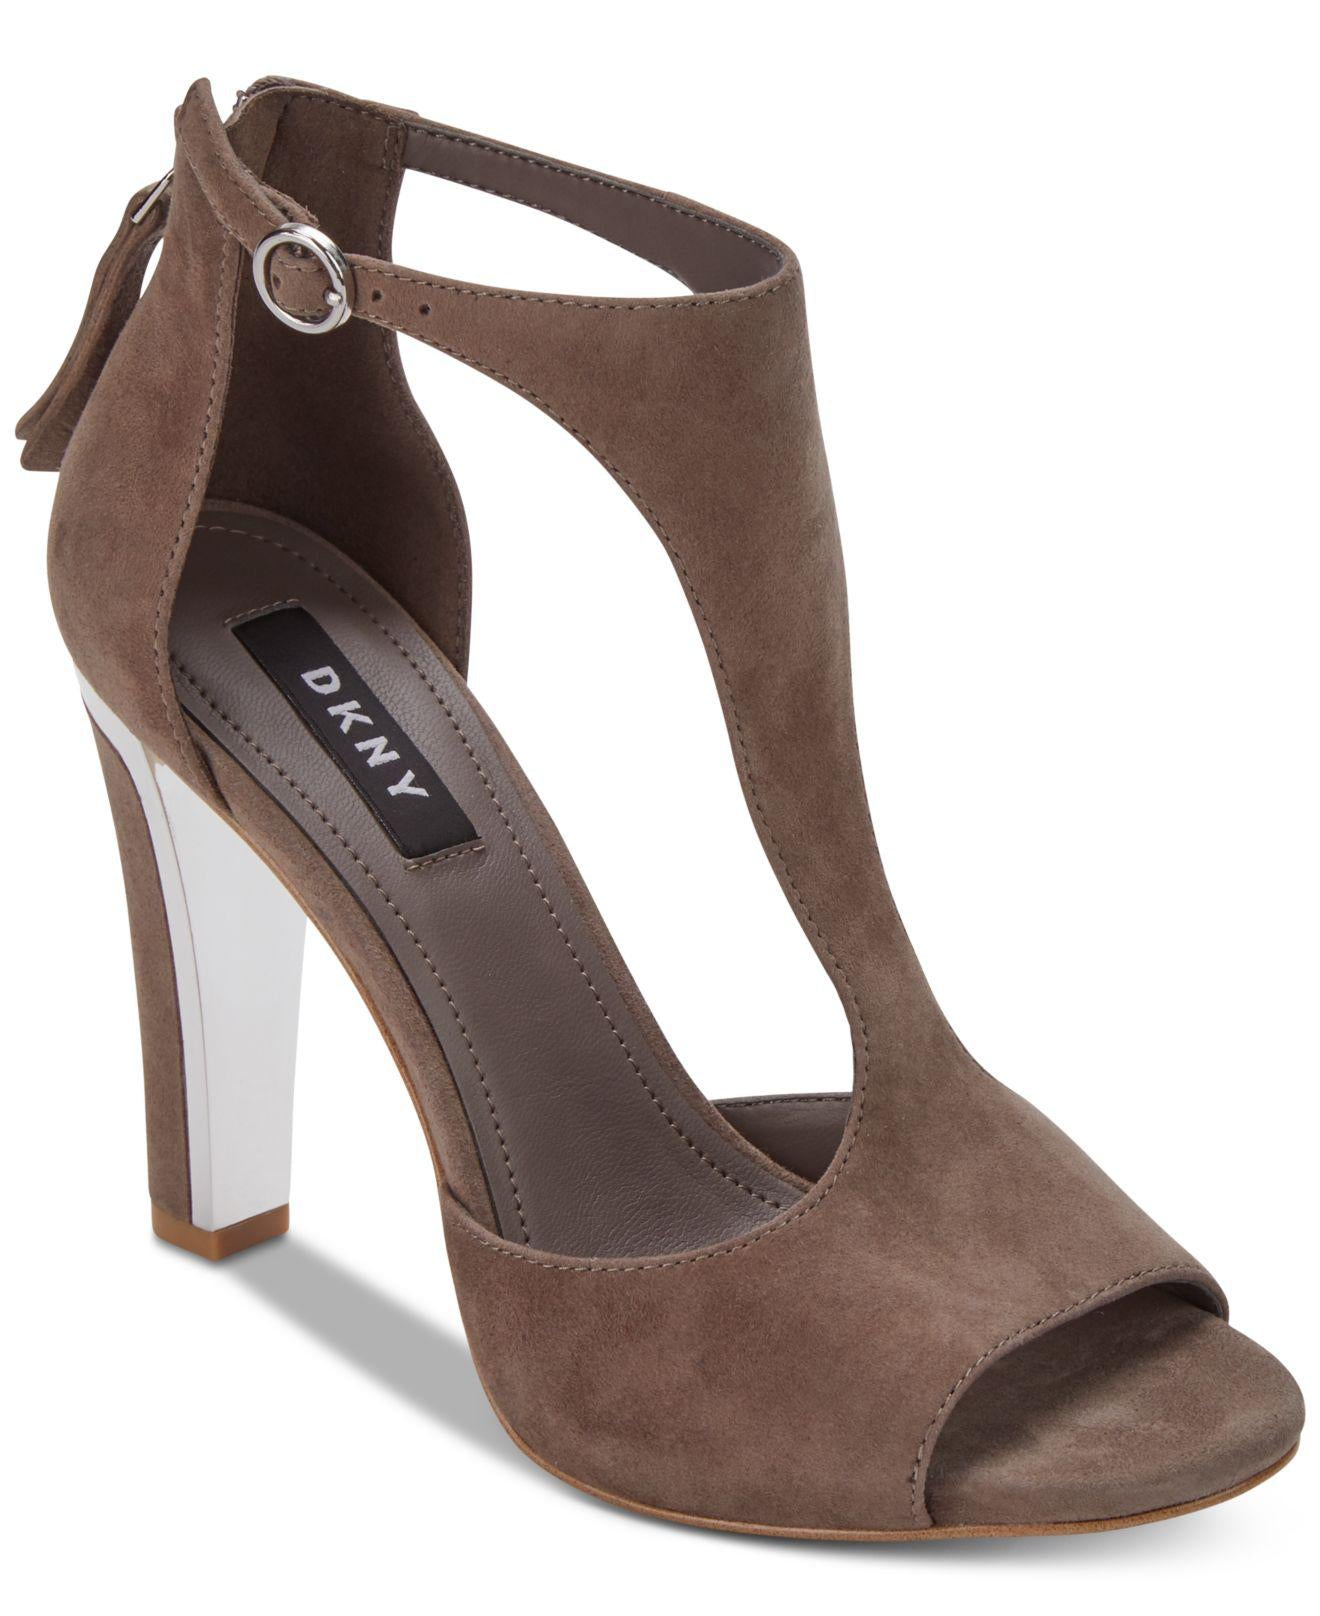 color-taupe-suede